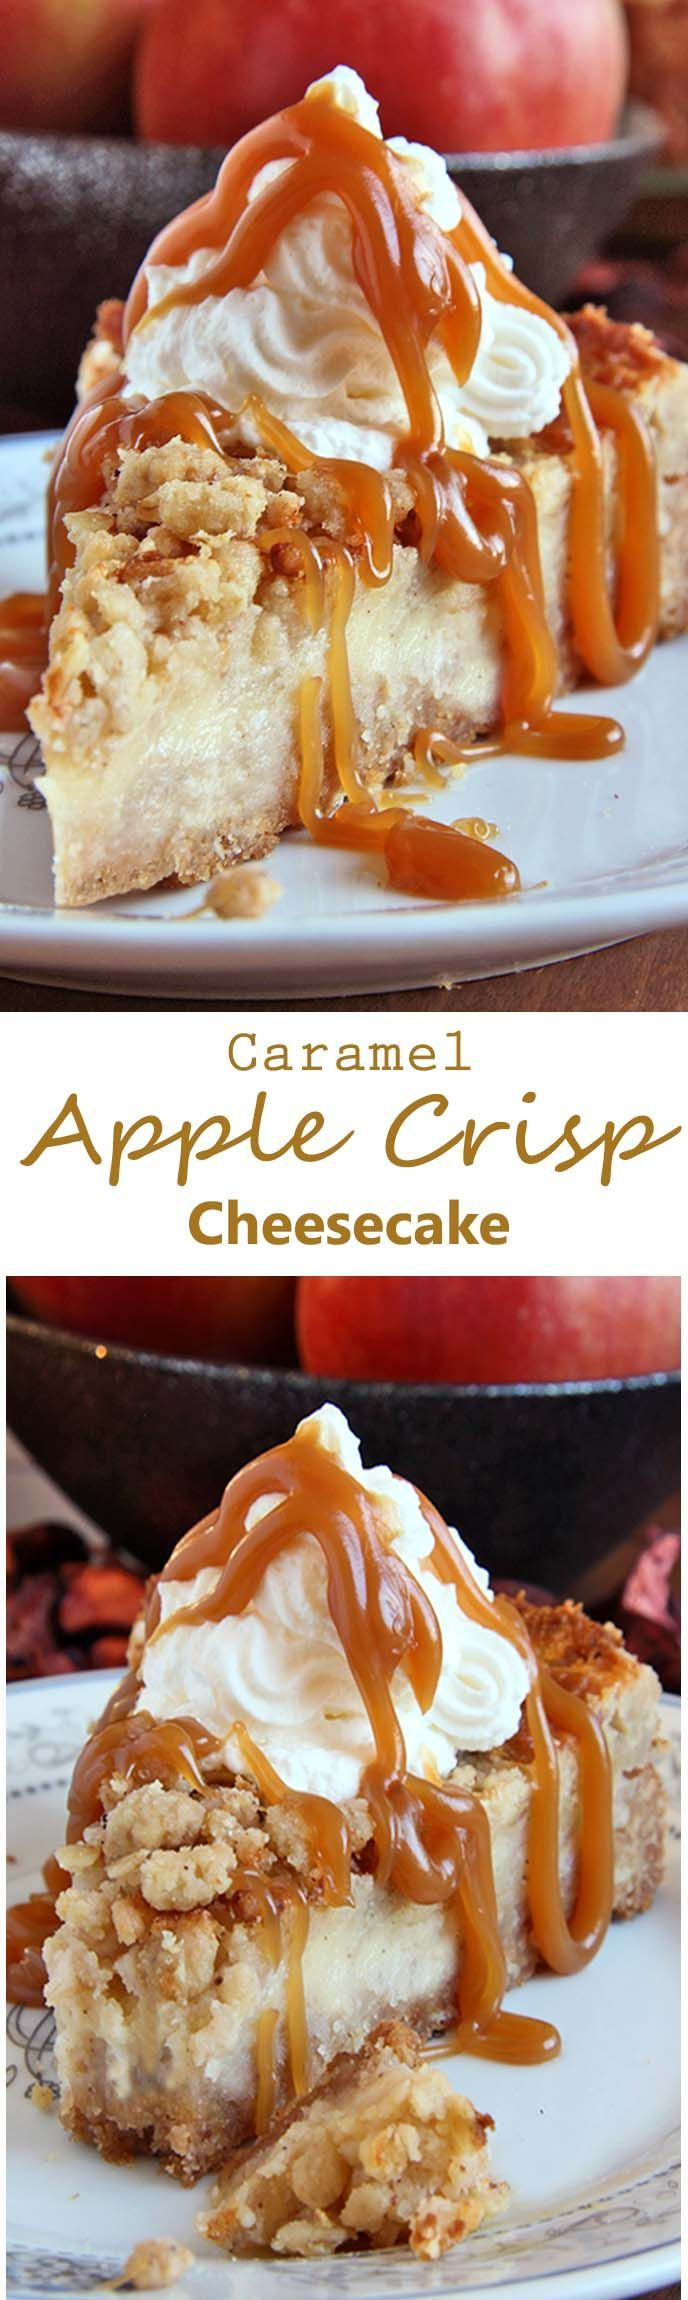 All of the sweet and caramely goodness of a traditional apple crisp, baked on graham cracker crust cheesecake and topped with a dollop of whipped cream.